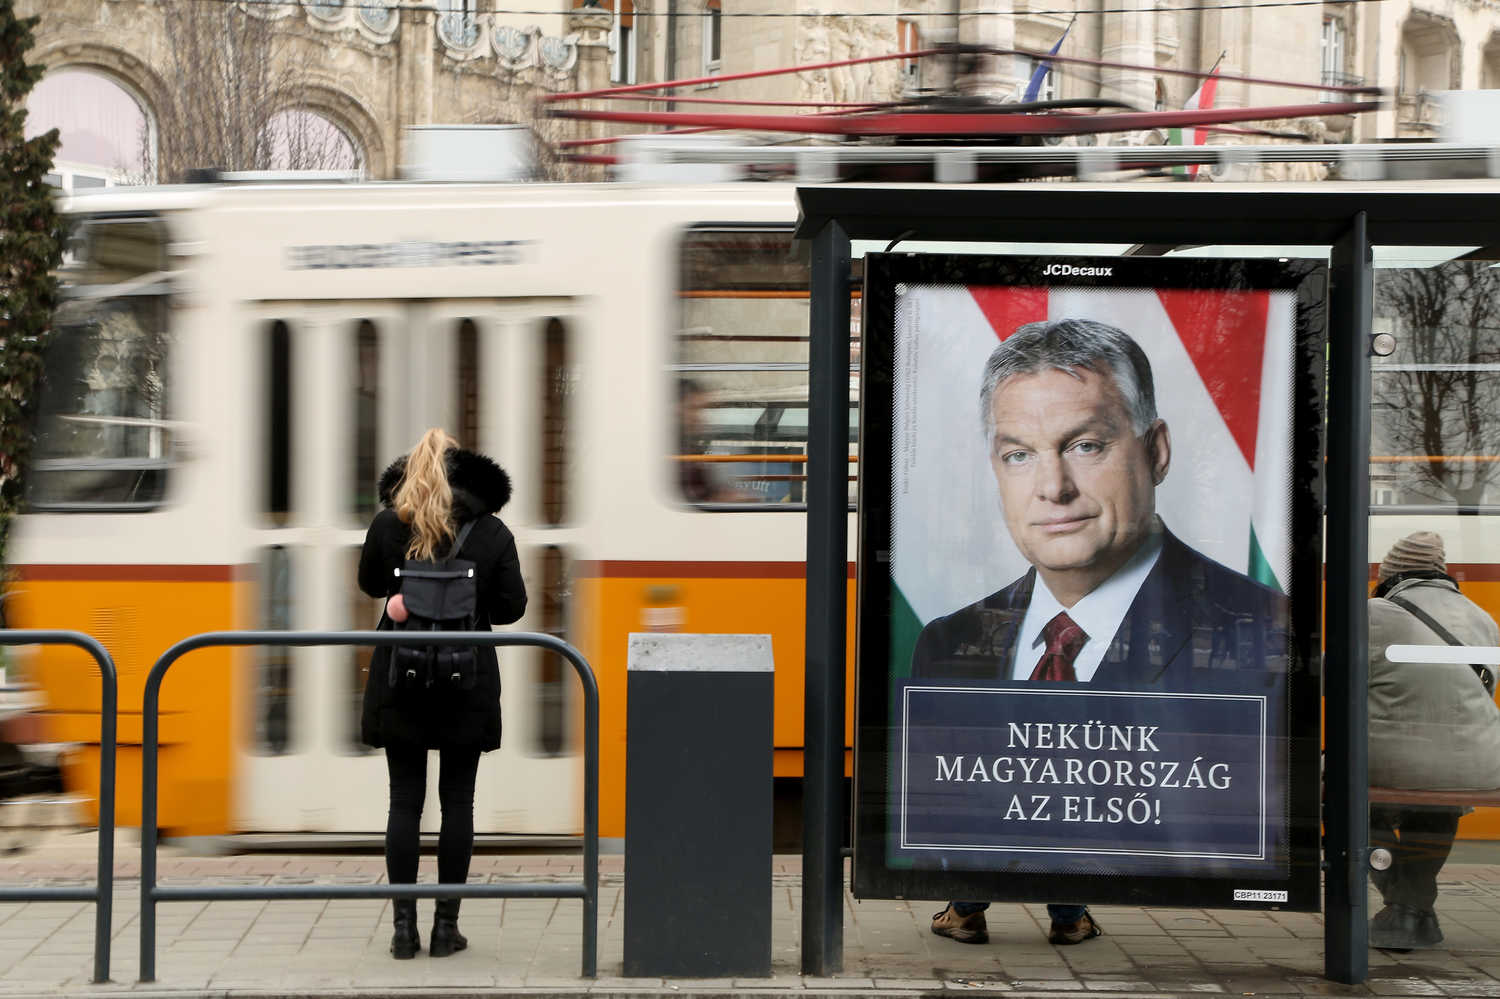 hungary orban 2018 elections fidesz populist migration